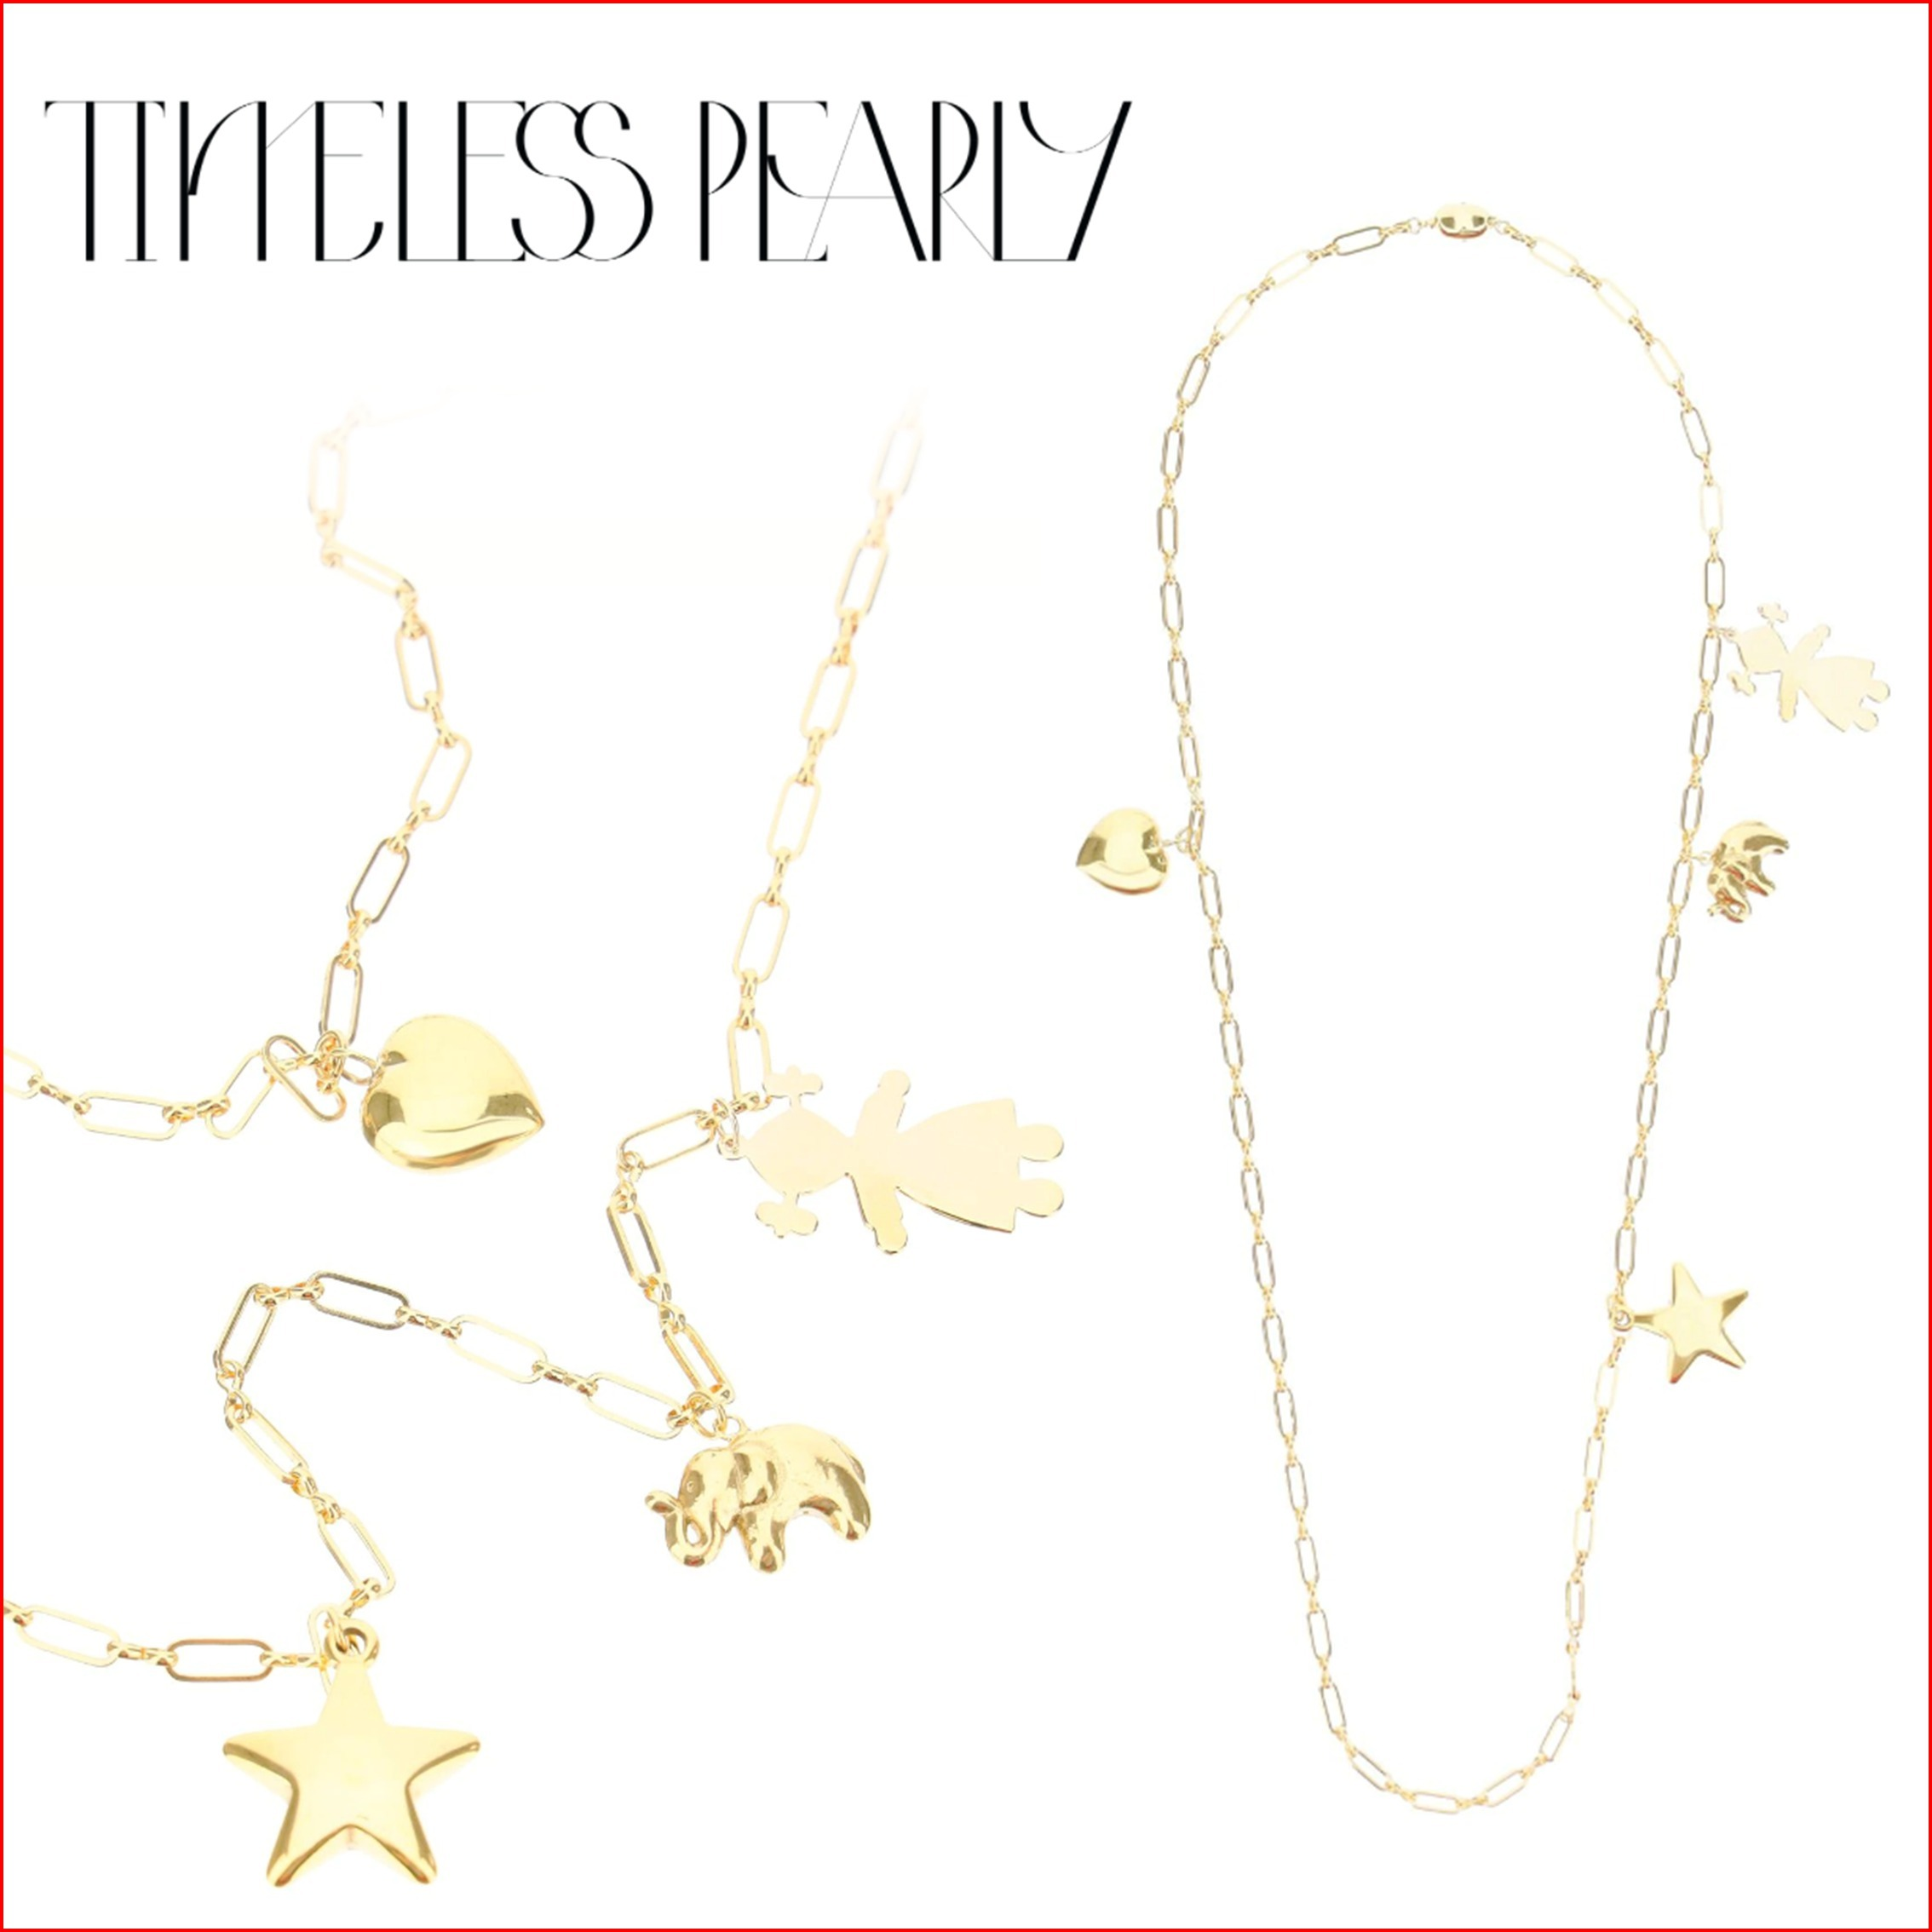 TIMELESS PEARLY ネックレス 24K ハート ハンドメイド ゴールド (TIMELESS PEARLY/ネックレス・ペンダント) 69686425